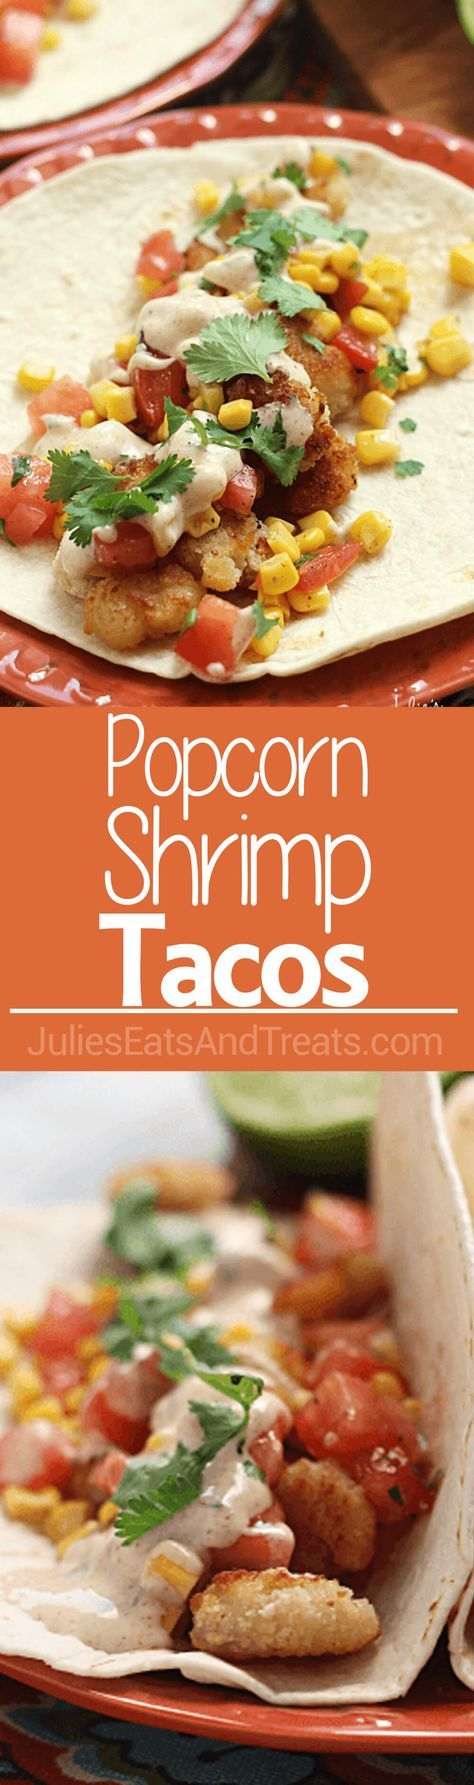 Popcorn Shrimp Tacos with Corn Salsa and Cilantro Lime Sauce ~ Crunchy Popcorn…